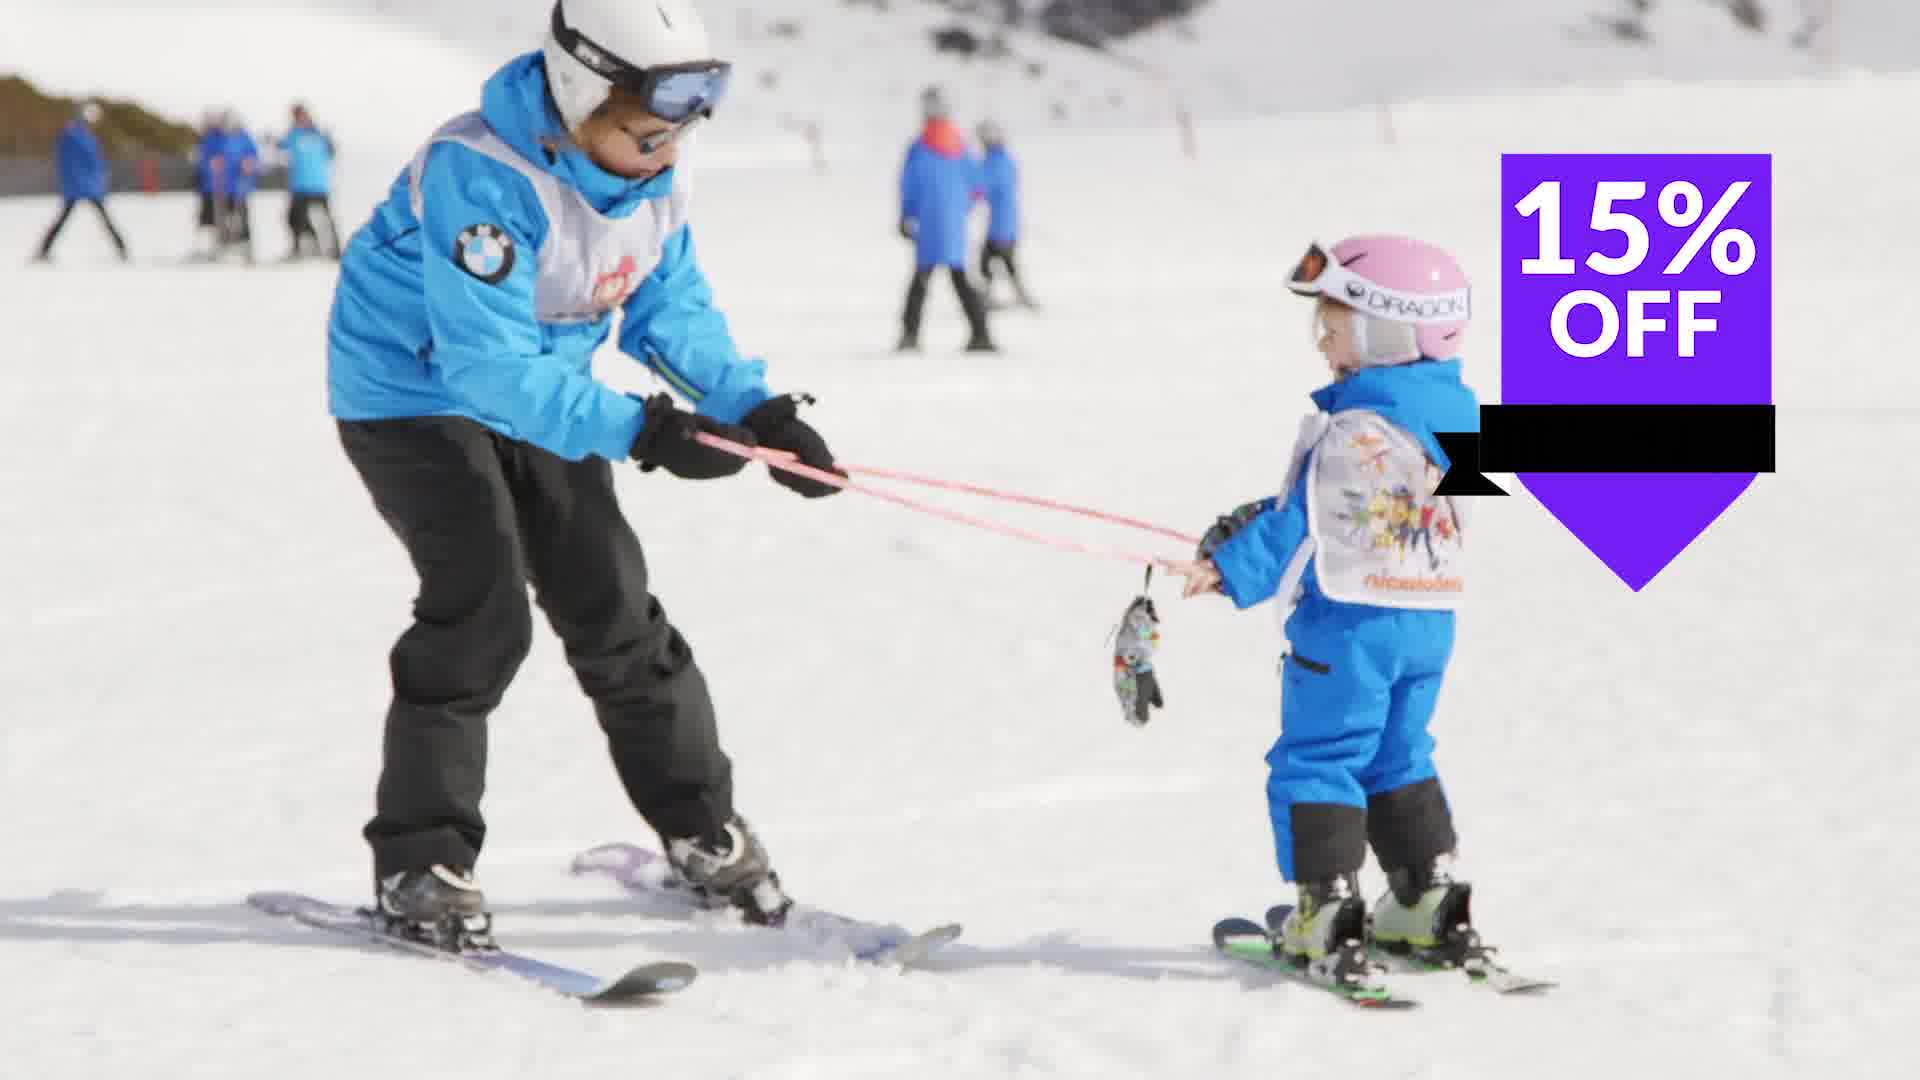 Hero Pass Discounts | Falls Creek